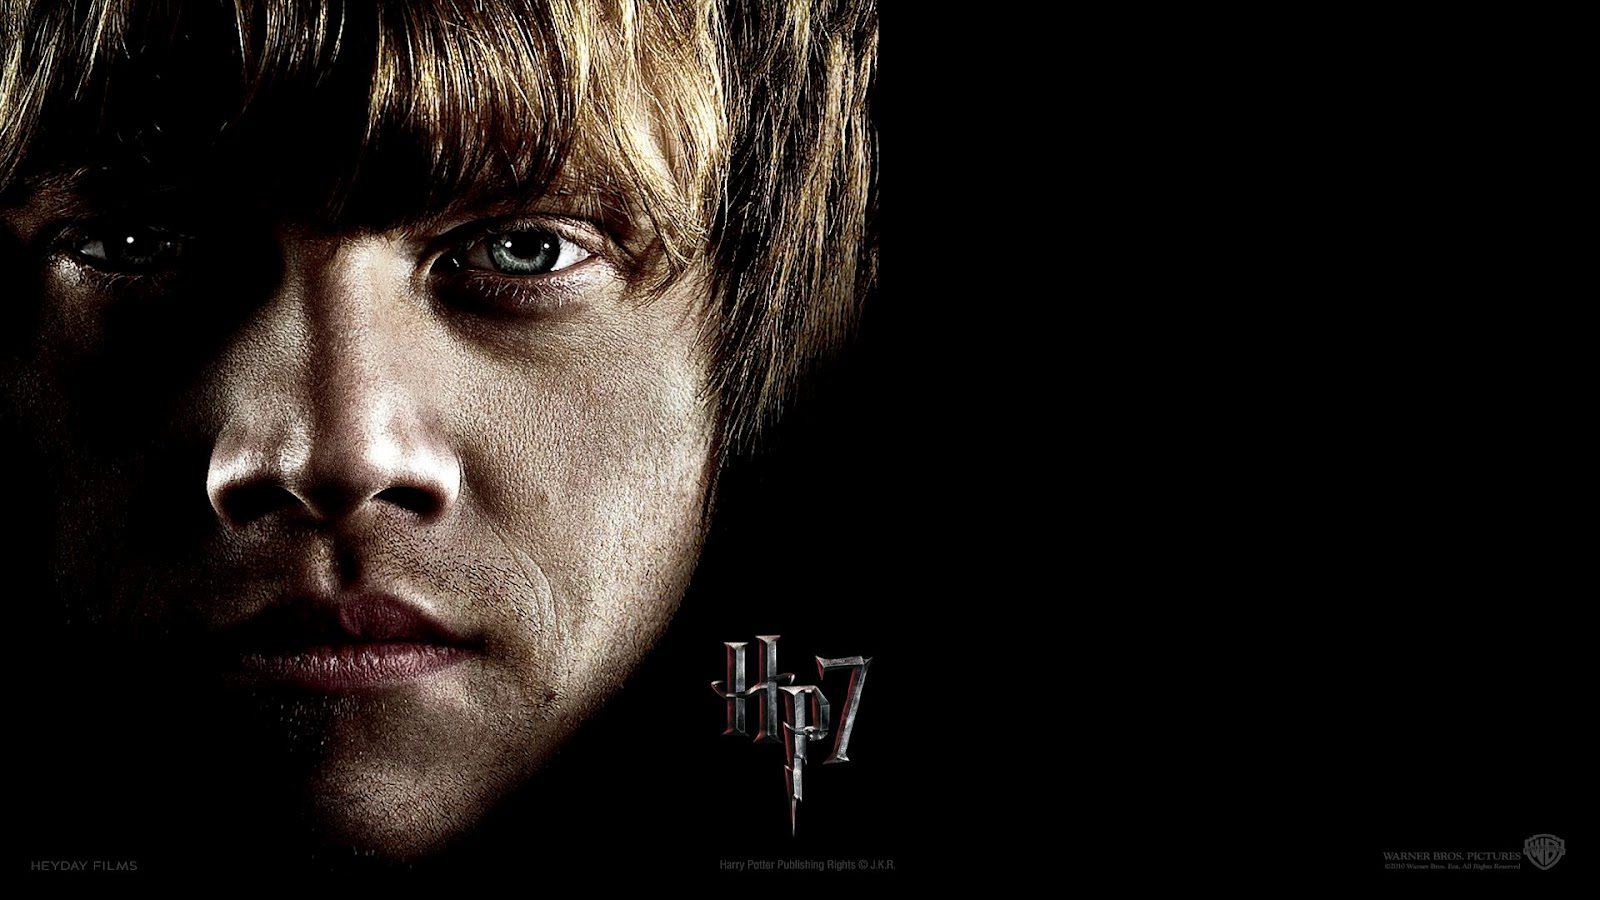 http://1.bp.blogspot.com/-F05IPzoBwxU/UBHzMRsfjVI/AAAAAAAACtw/m3ZKkDsRS-0/s1600/rupert-grint-in-harry-potter-and-the-deathly-hallows-part-i-wallpaper-15_1920x1080_88268.jpg